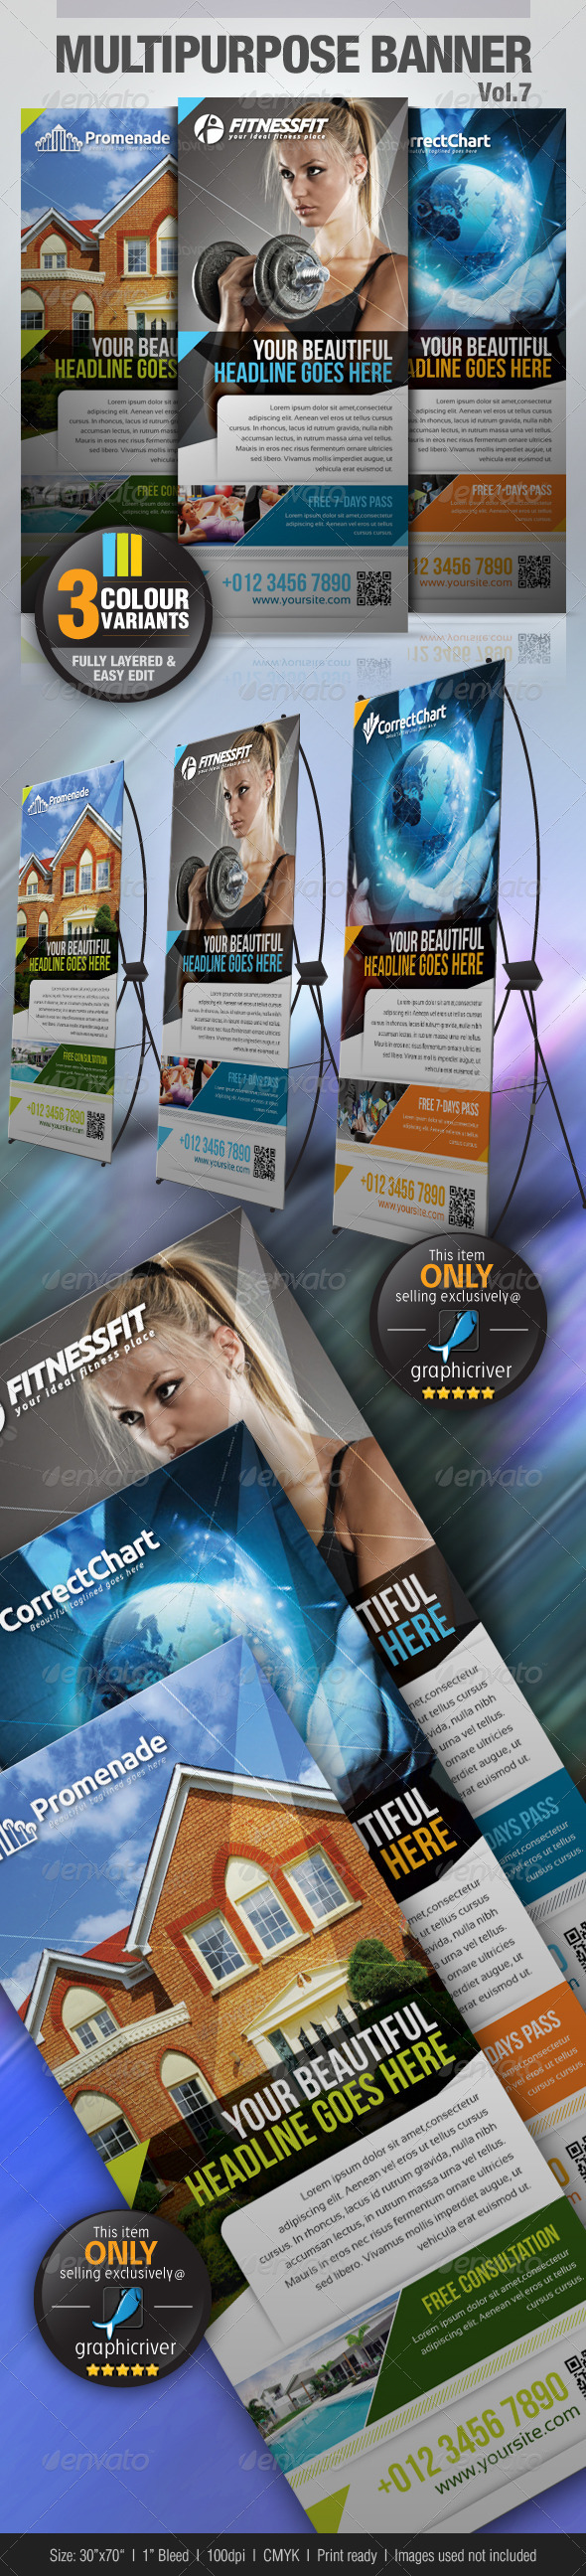 GraphicRiver Multipurpose Banner Vol.6 3589663